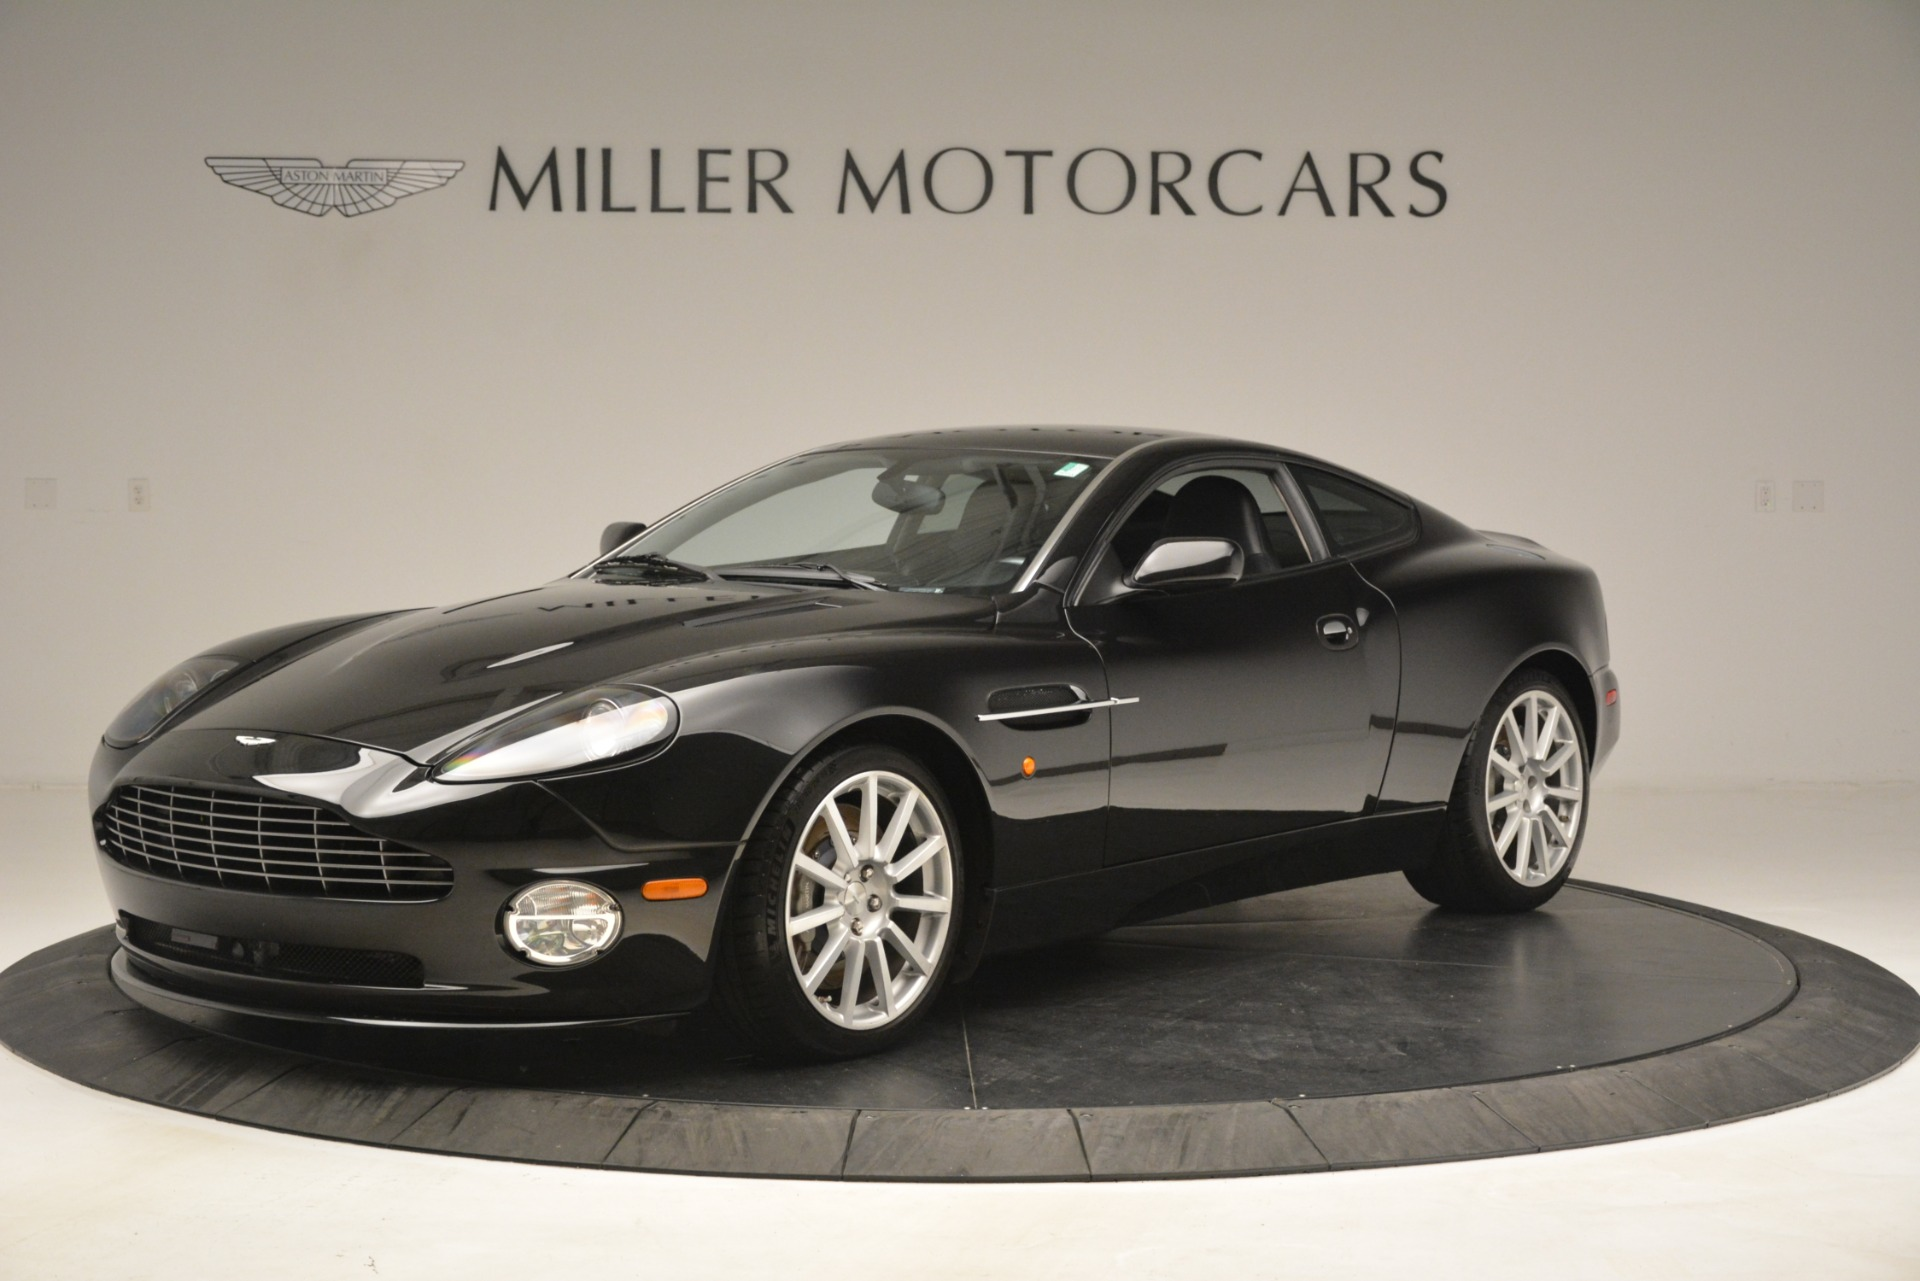 Used 2005 Aston Martin V12 Vanquish S Coupe for sale $95,900 at Maserati of Greenwich in Greenwich CT 06830 1